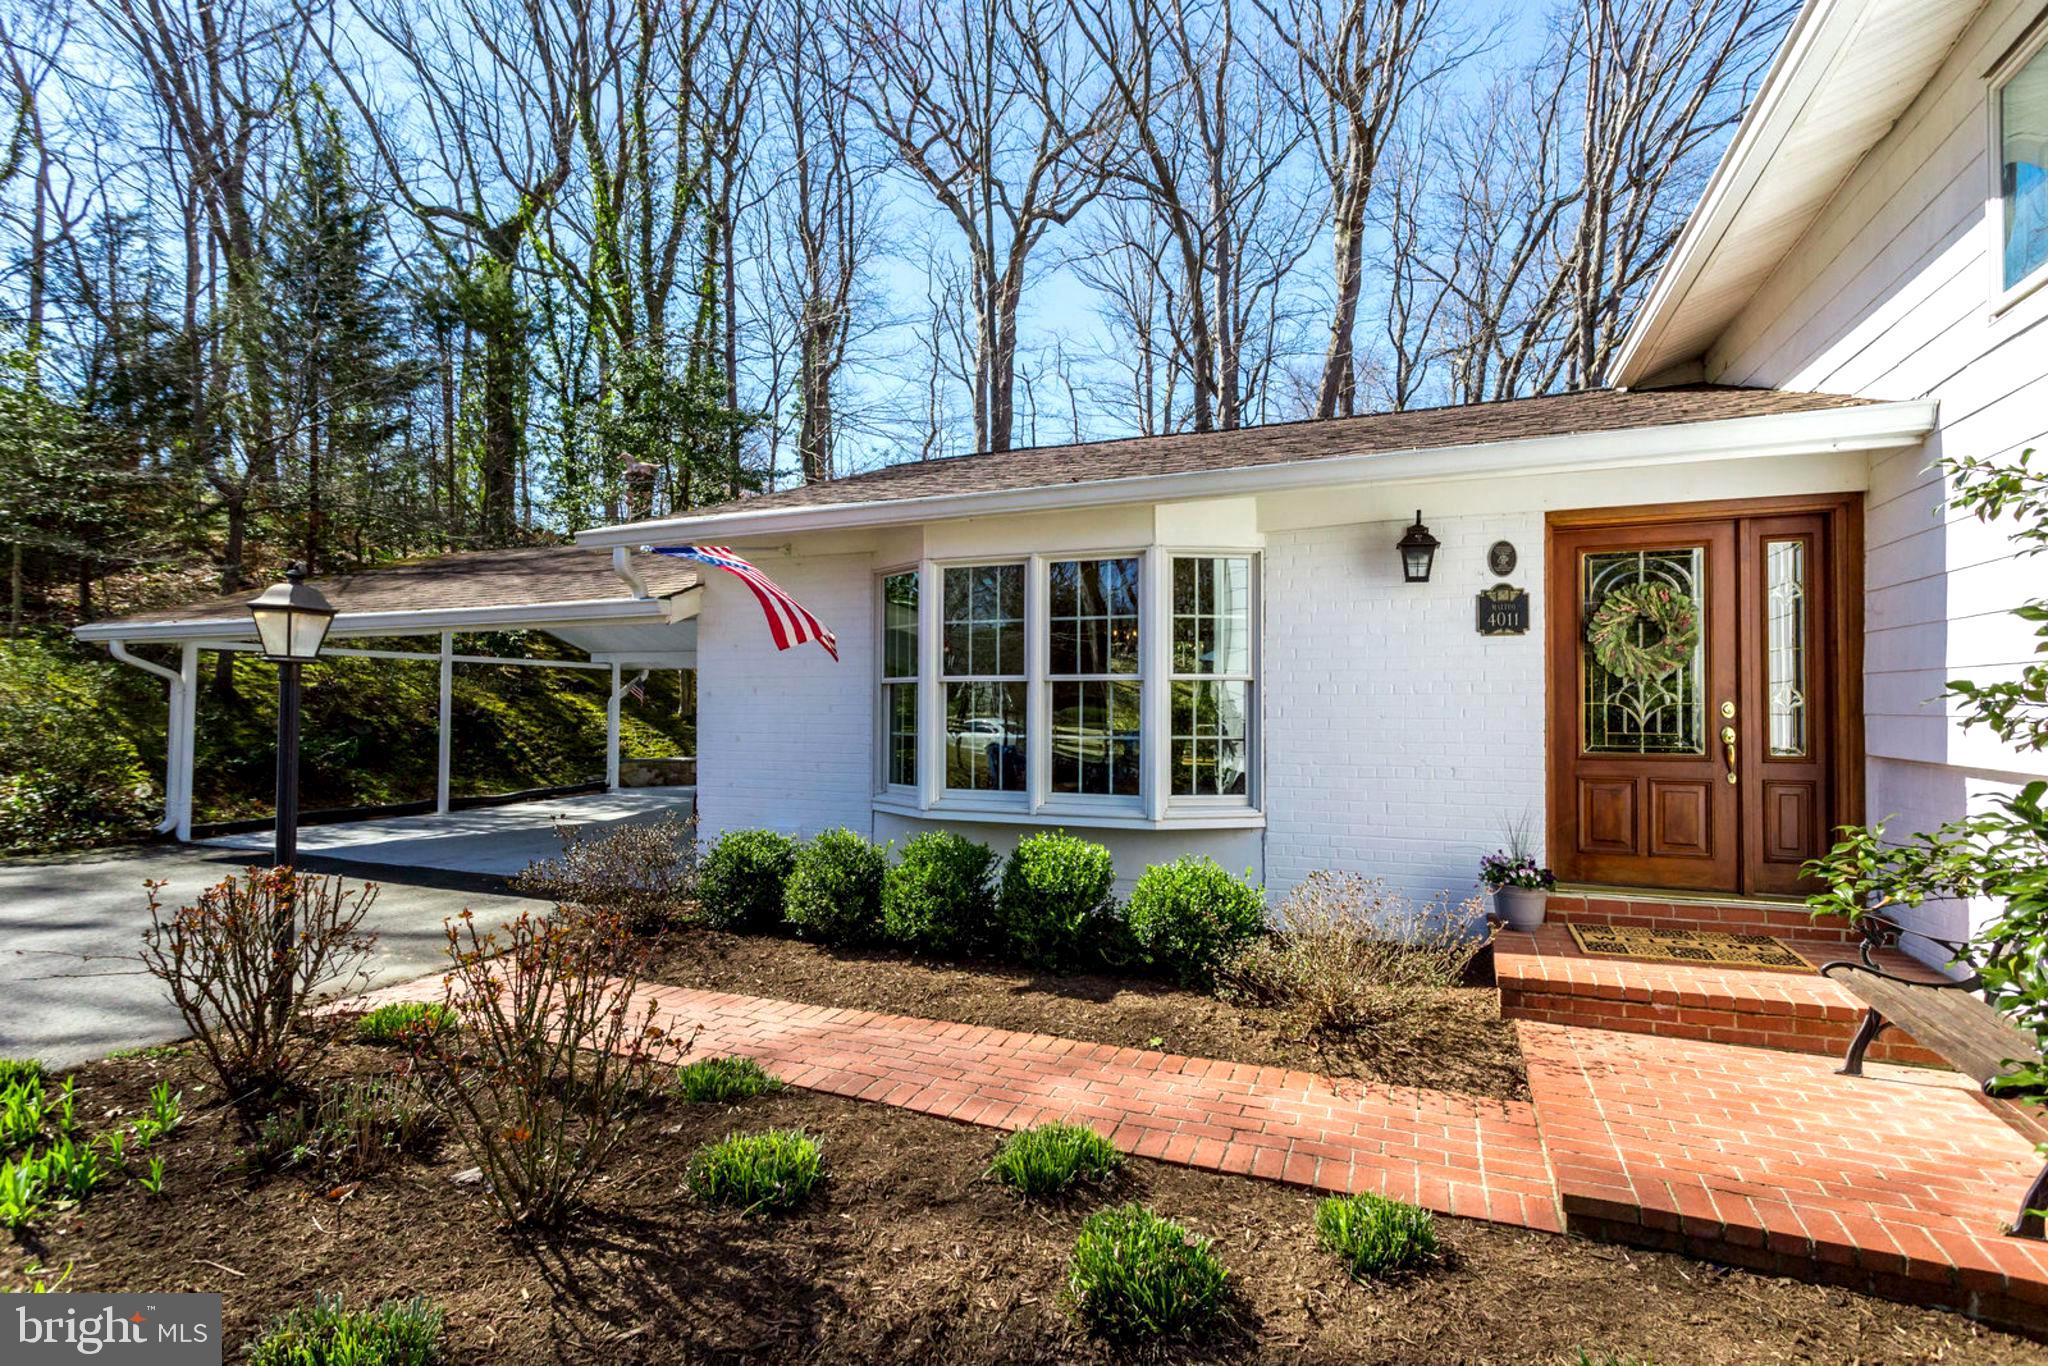 AGENTS: ALL OFFERS MUST BE SUBMITTED BY     SUNDAY  3/31/19  5pm.                                                            This is a true Virginia oasis that embodies the fun of entertaining and the great outdoors. This 4 bedroom, 3 baths on 1.5 acres is tucked away on a cul-de-sac in bustling Alexandria. This property has everything a nature- loving individual could want all year long. From the multi-level deck where you can host your friends on summer nights to the screened in gazebo where you can privately enjoy your summer nights listening to the stream that runs on the edge of the property. The appreciation for the outdoors and entertaining isn~t just limited to the warm months though. This home features newly renovated windows and a sunroom that lets you enjoy Virginia winters from the coziness of your home. Getting cozy in this home is easy, with the 2 fireplaces. You will want to share this view with all your friends! Entertaining friends and family, alike is easy with the refinished hardwood floors, stainless steel appliances and the freshly painted walls further extenuates this homes ability to bring people together. Starting the night off with divine meals in the dining room to moving the party to the family room to enjoy a game night with those you care about. Family and friends that are local or far can make their way to enjoy your piece of oasis with it being 12 miles to national airport and minutes away from Fort Belvoir military base.